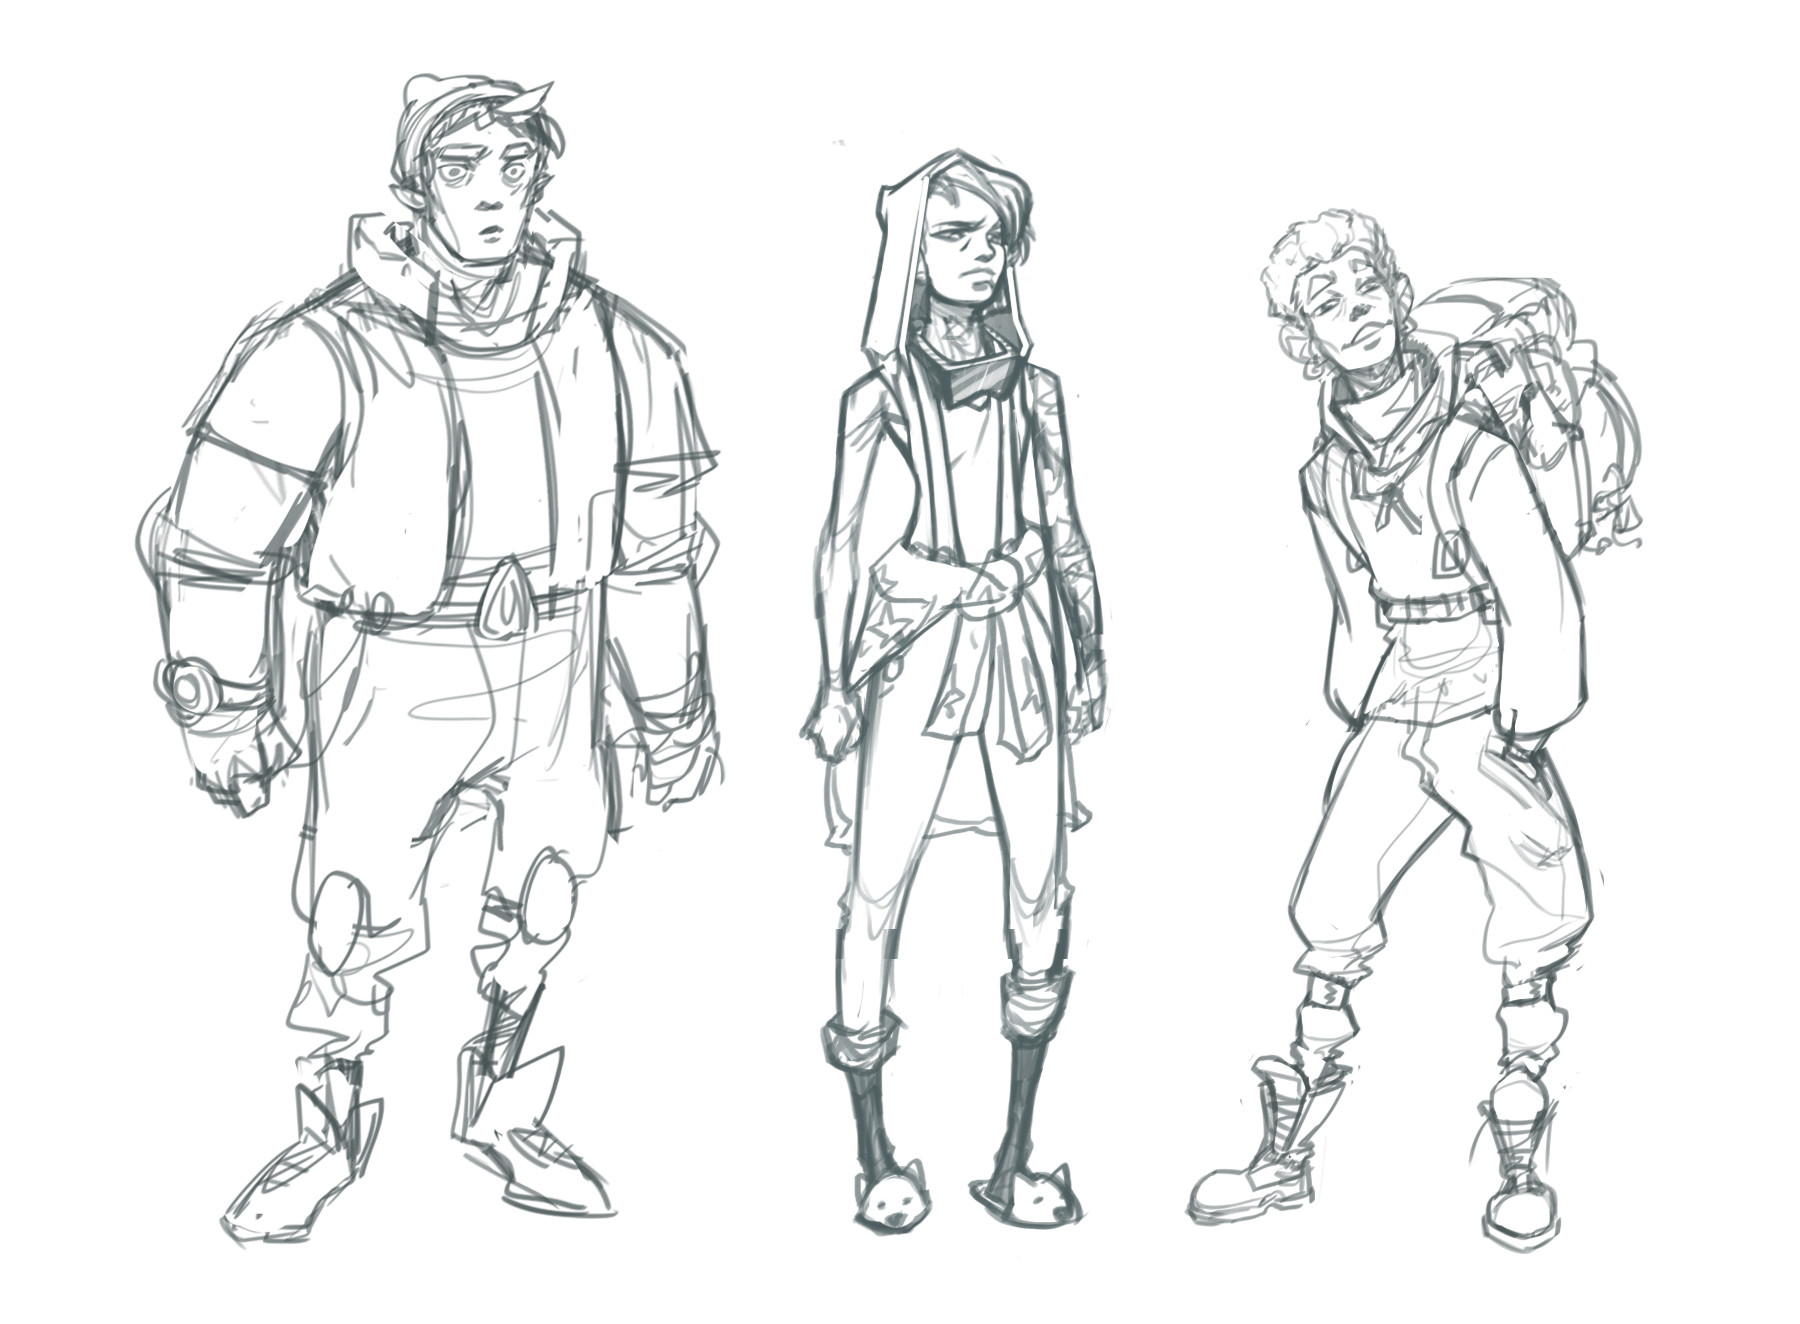 Corey shillingford team concept sketches